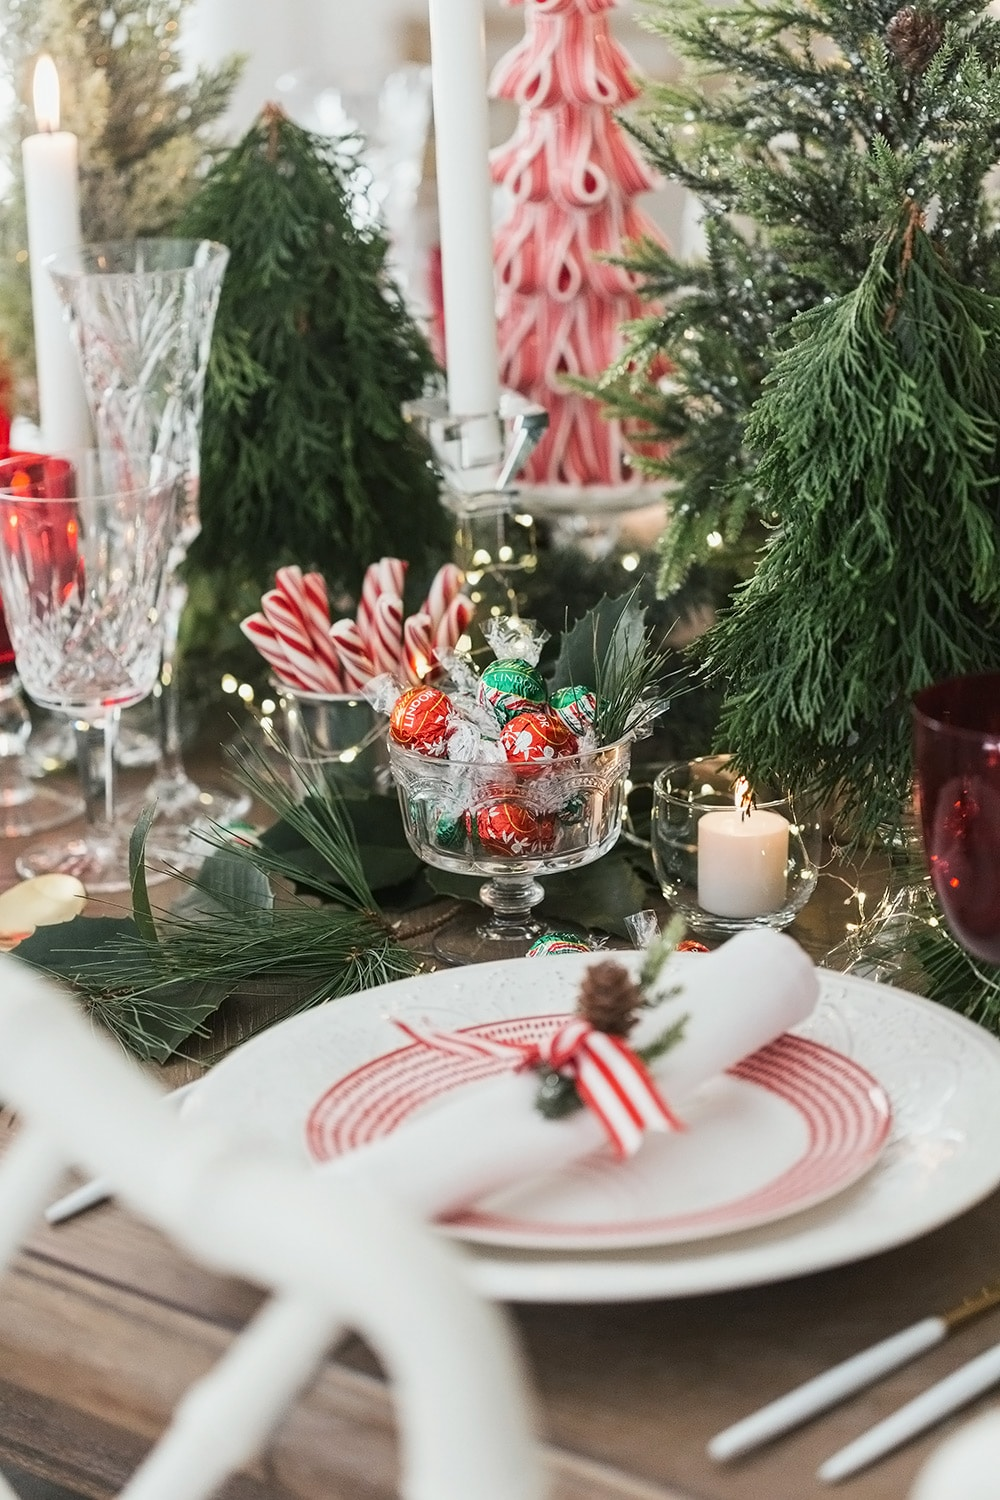 Christmas-themed table setting